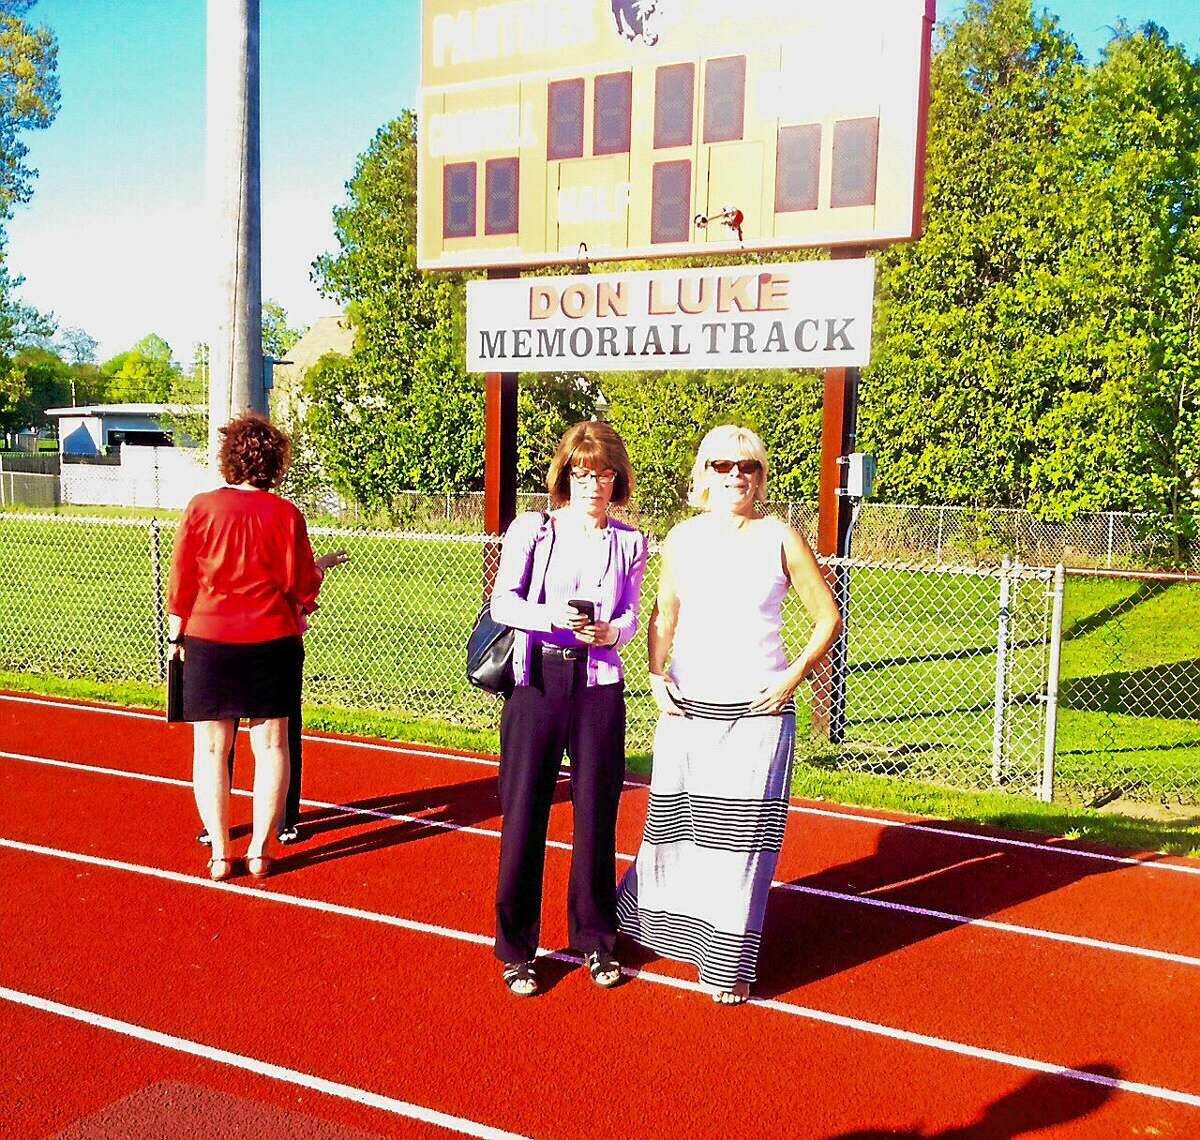 Cromwell residents, officials and family members gathered this week to honor the late Coach Don Luke, who passed away in January 2014, where they dedicated the track to him. Here his widow Patricia and their daughters Ivy and Melanie attended the unveiling.